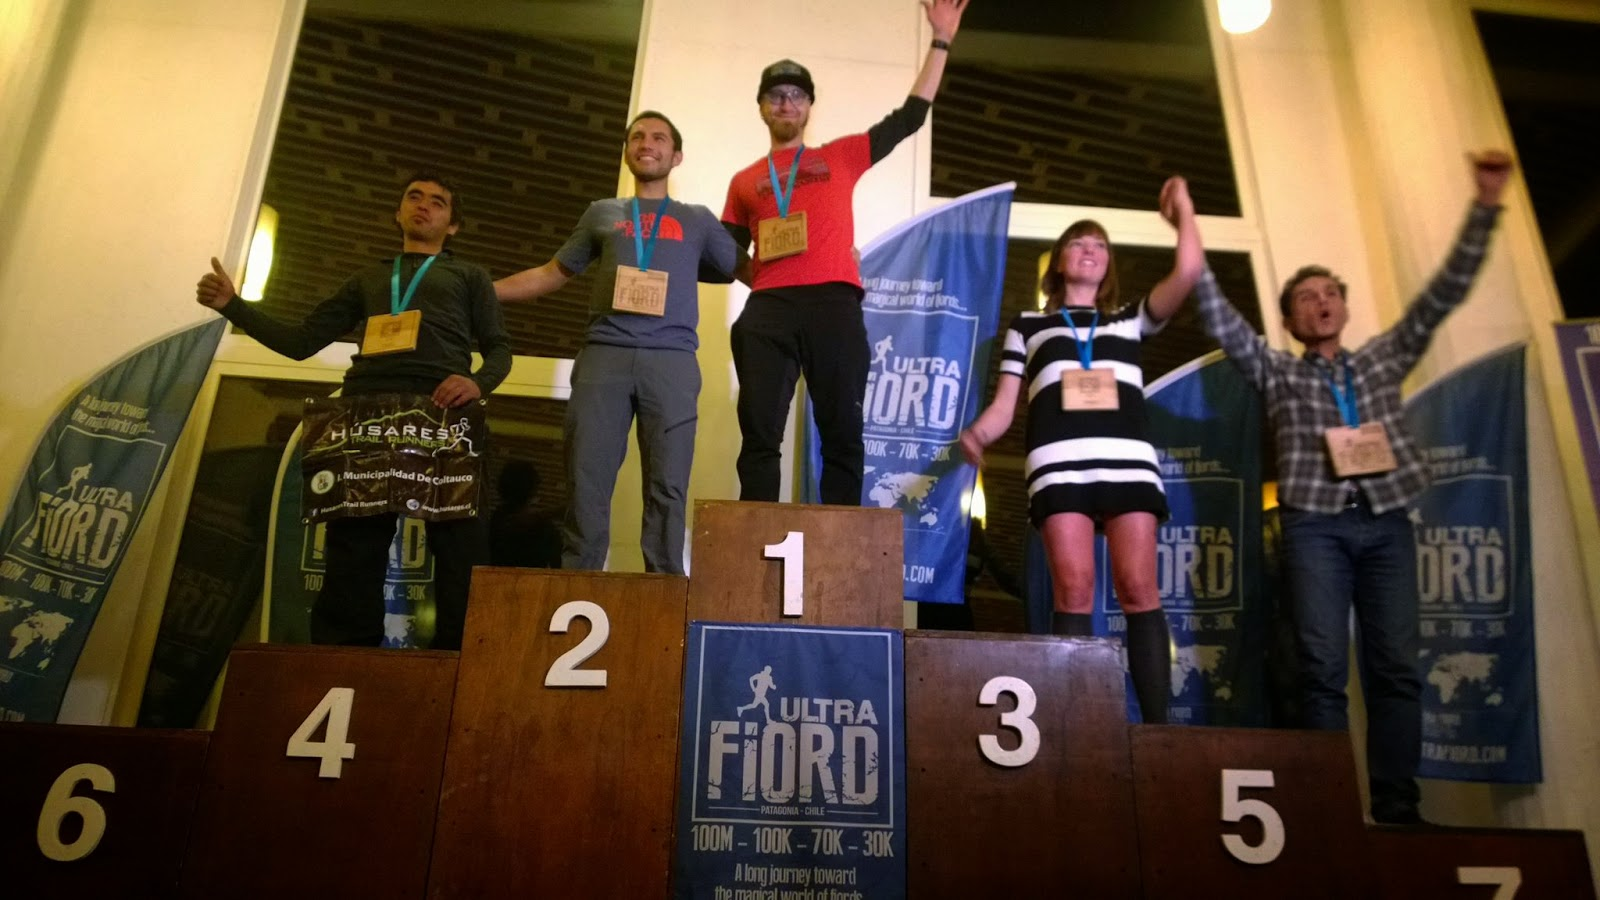 Ultra Fiord Finish Line 2015, Patagonia, Chile